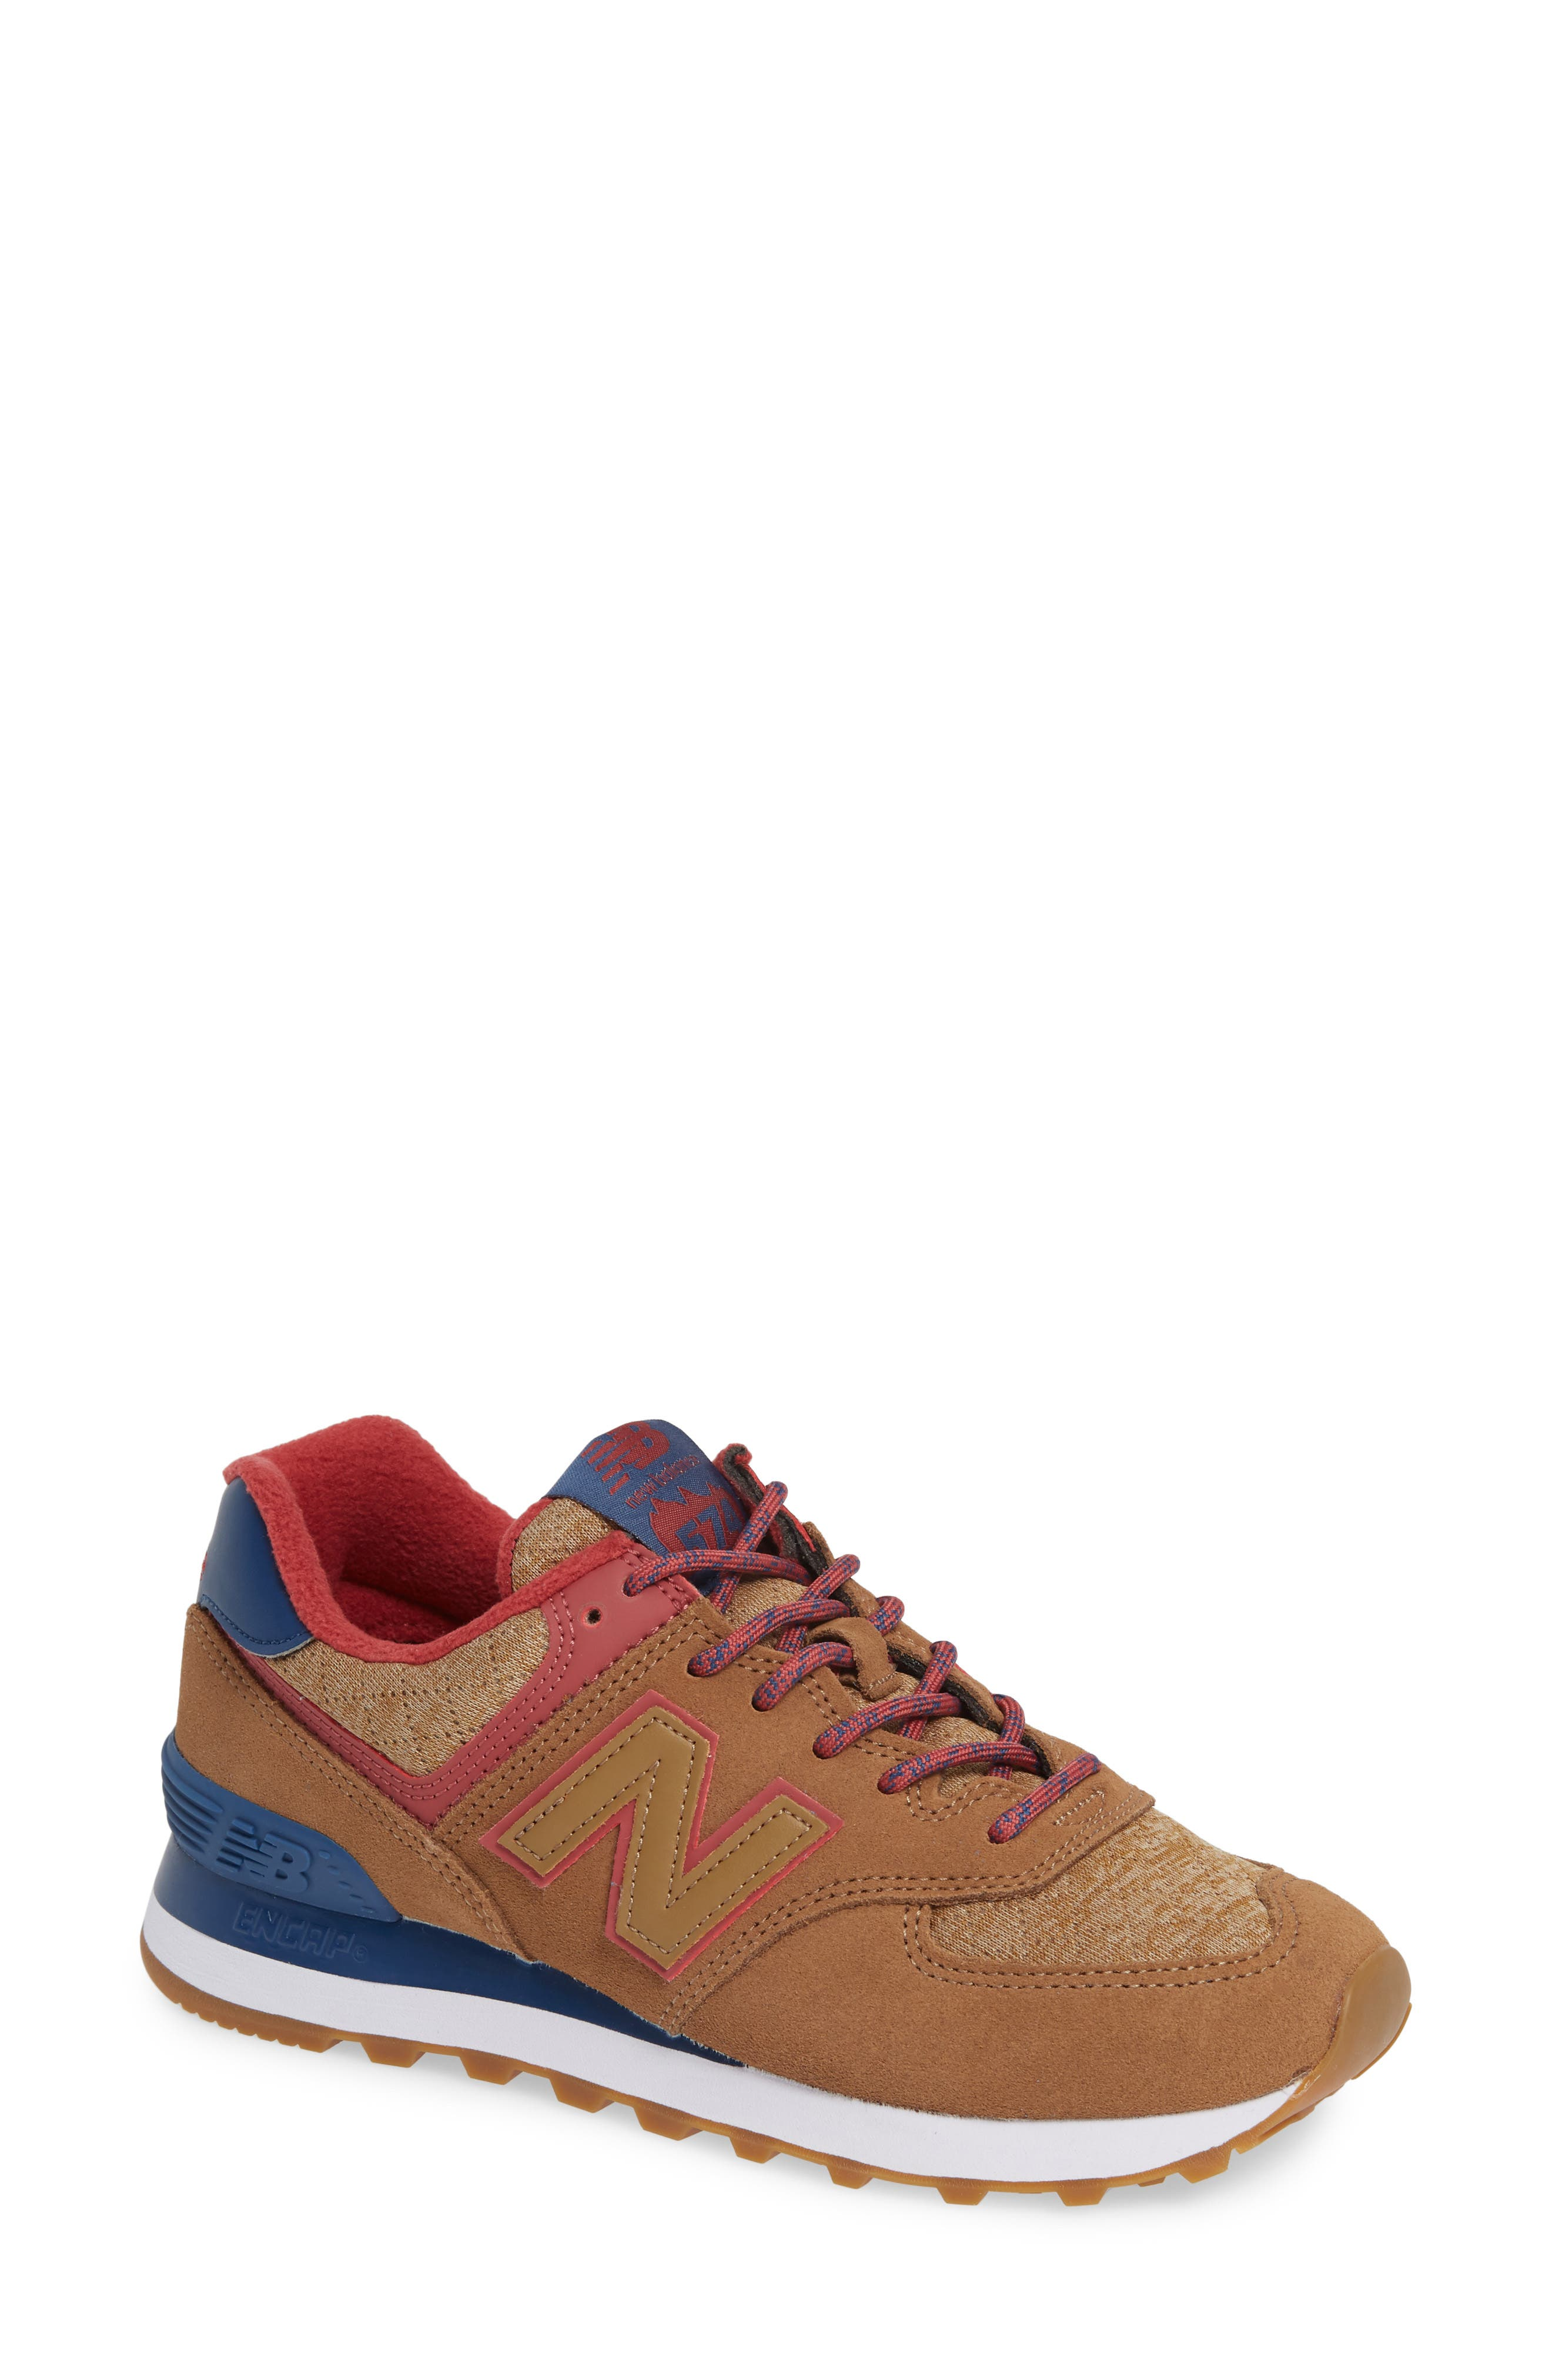 NEW BALANCE Women'S 574 Winter Quilted Low-Top Sneakers in Tarnish